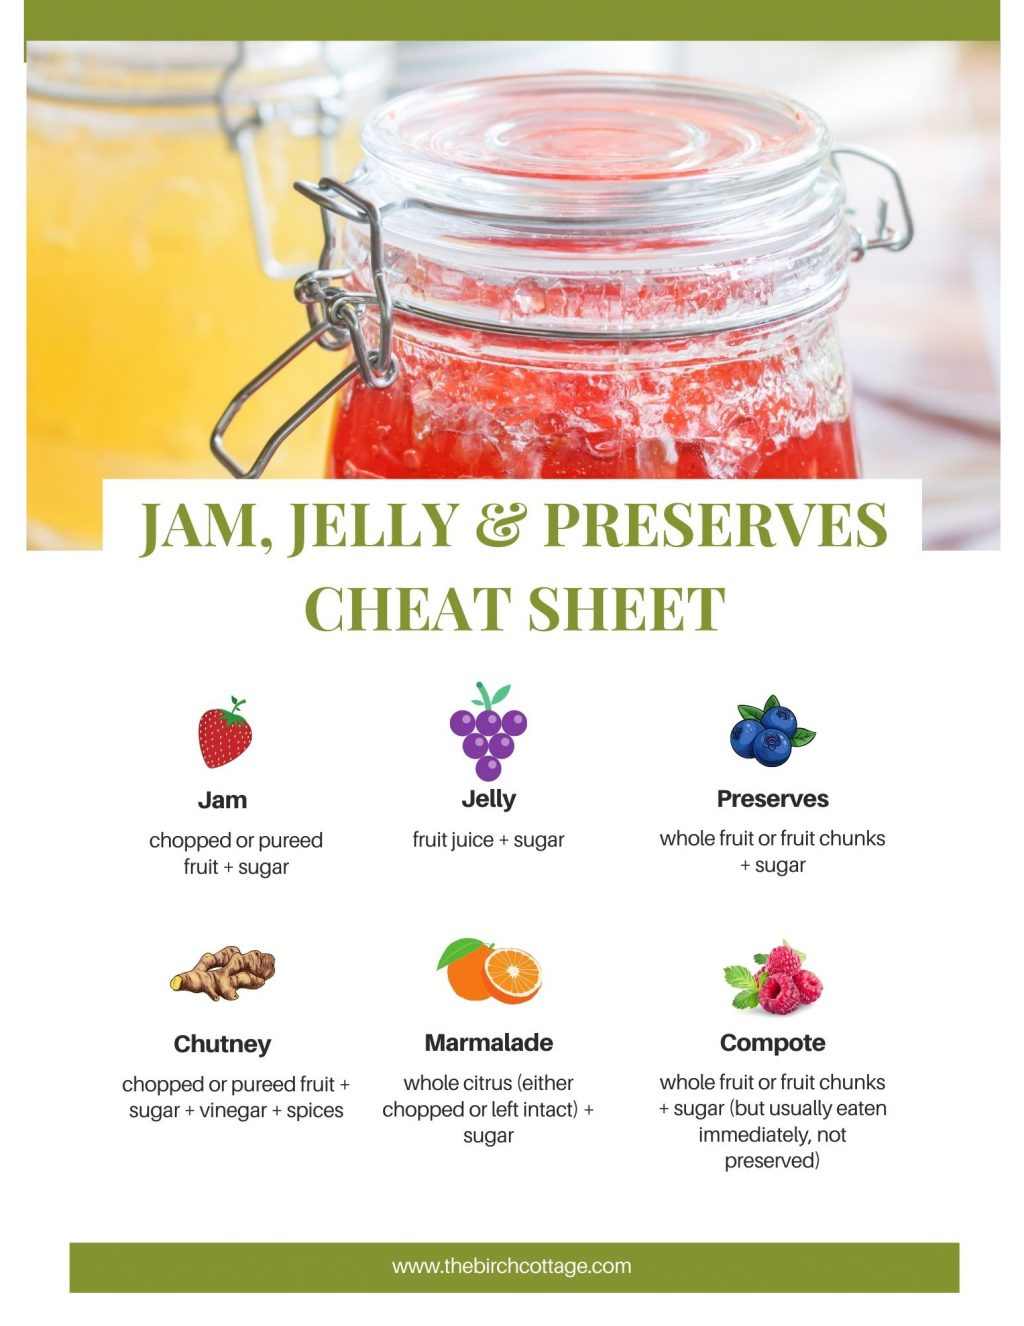 jam, jelly and preserves cheat sheet